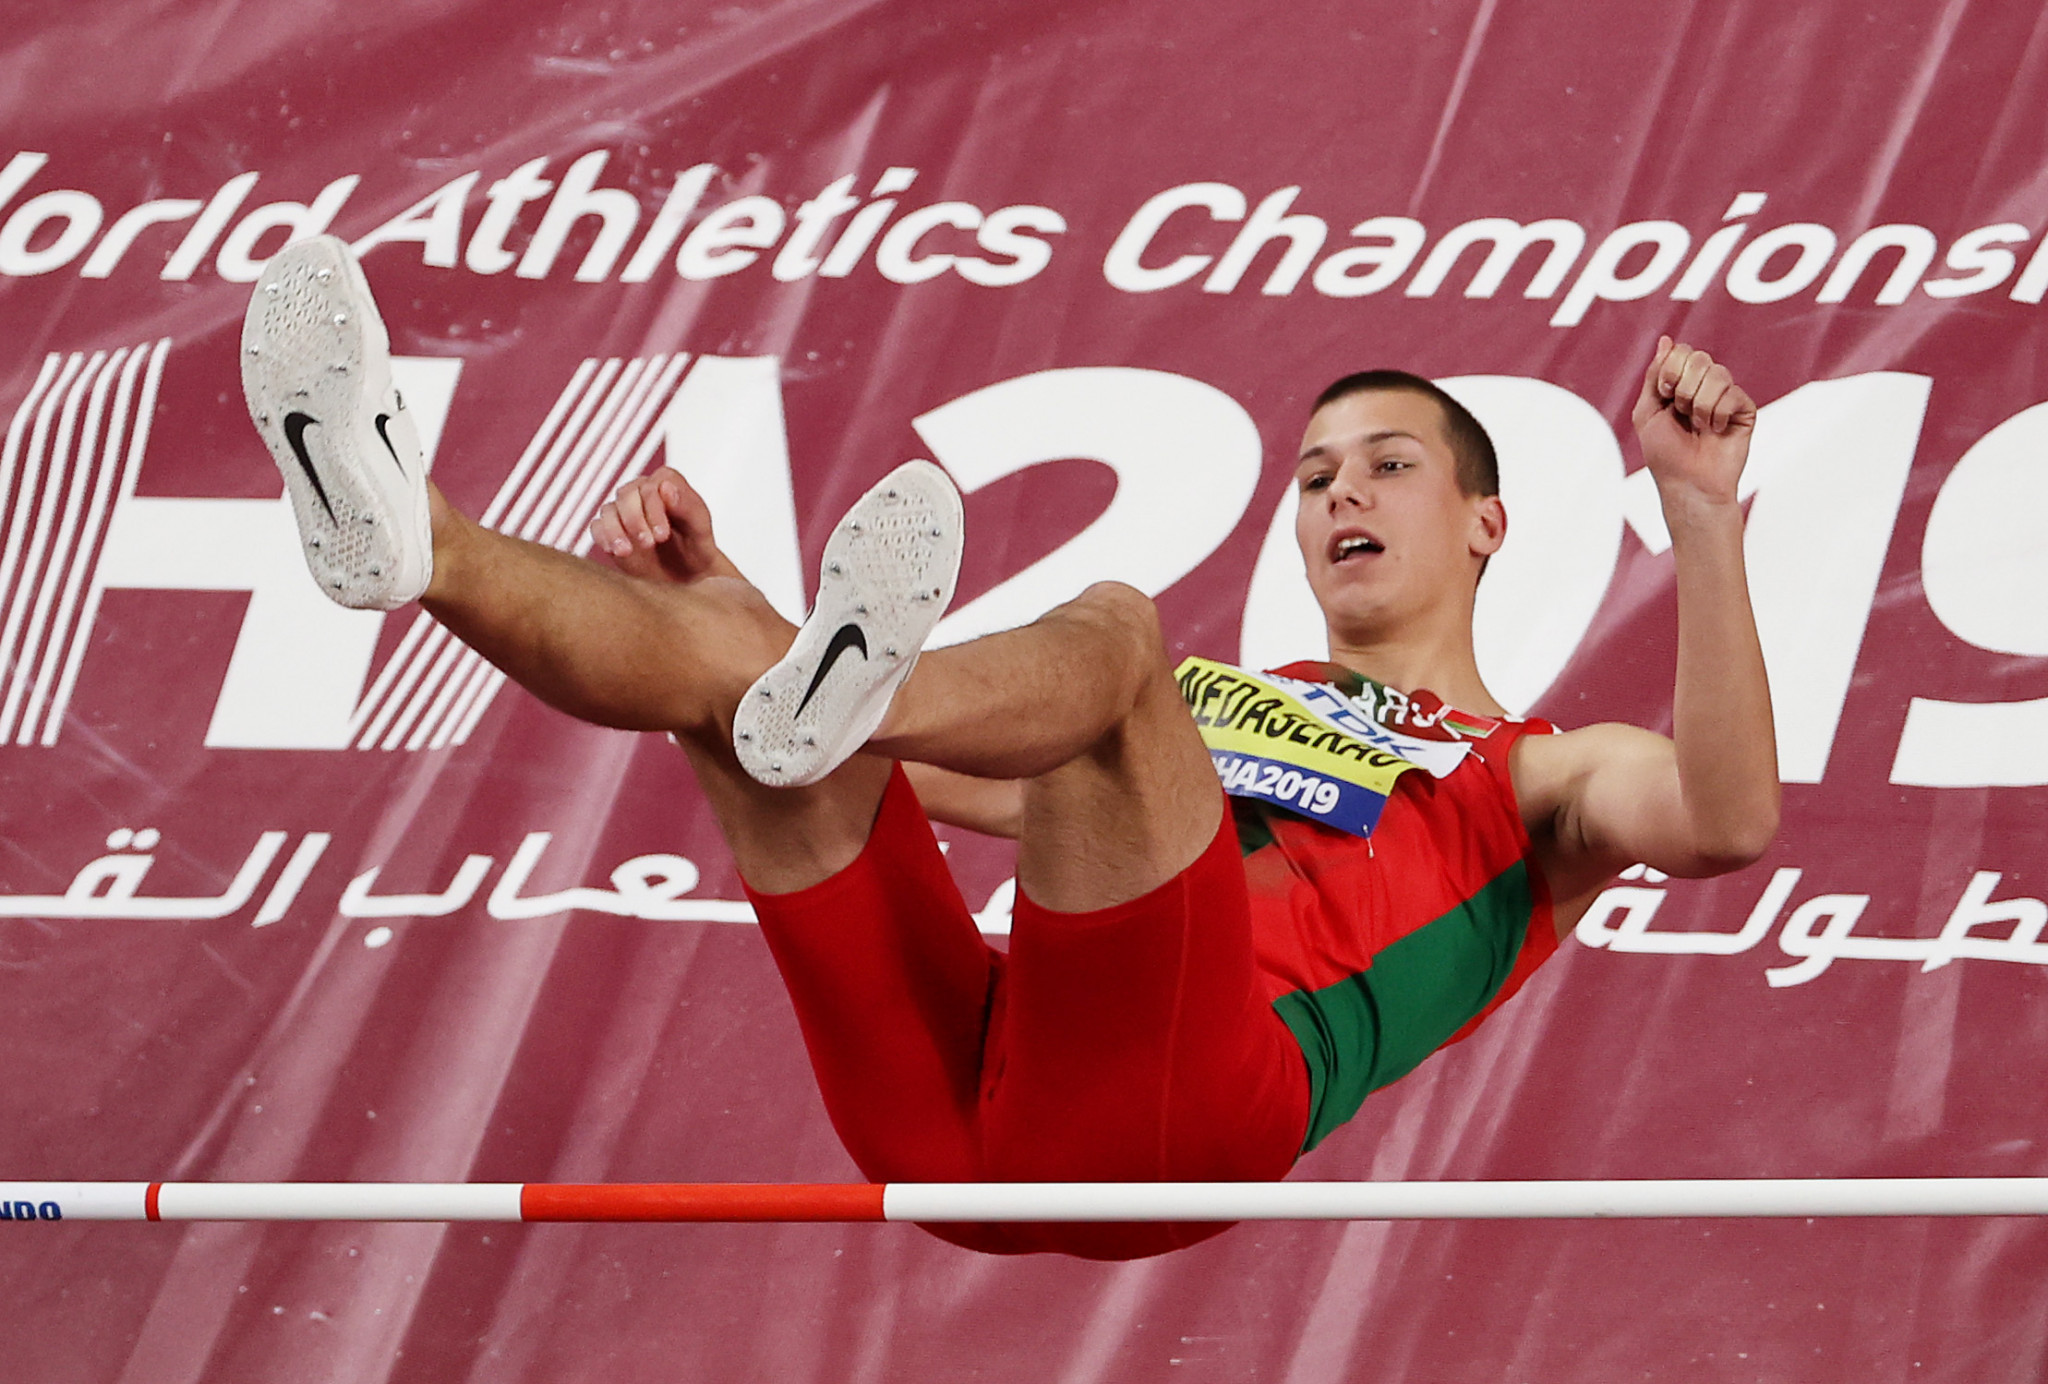 Dzmitry Nabokau competed for Belarus at this year's iAAF World Championships in Doha